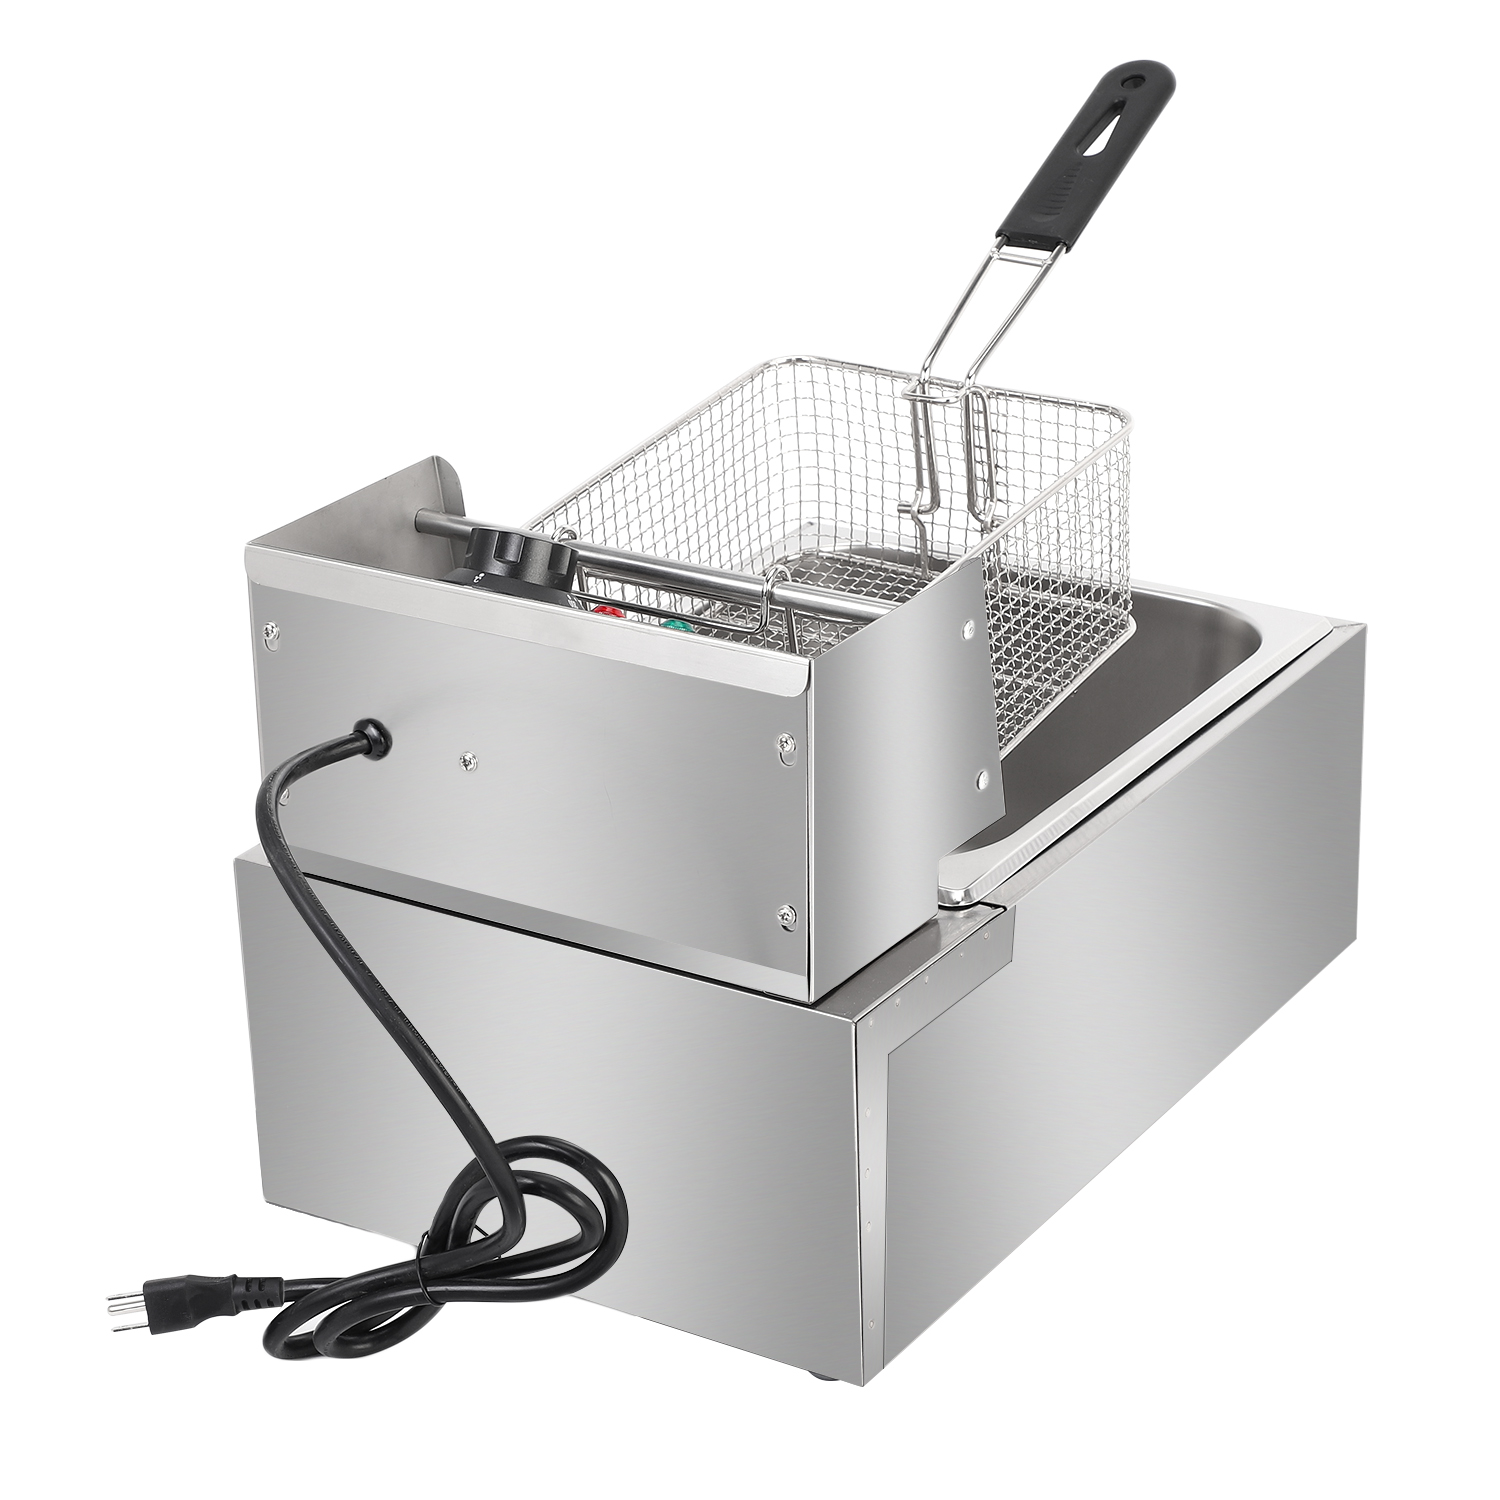 EH81 2500W MAX 110V 6.3QT/6L Stainless Steel Single Cylinder Electric Fryer French fries machine US Plug